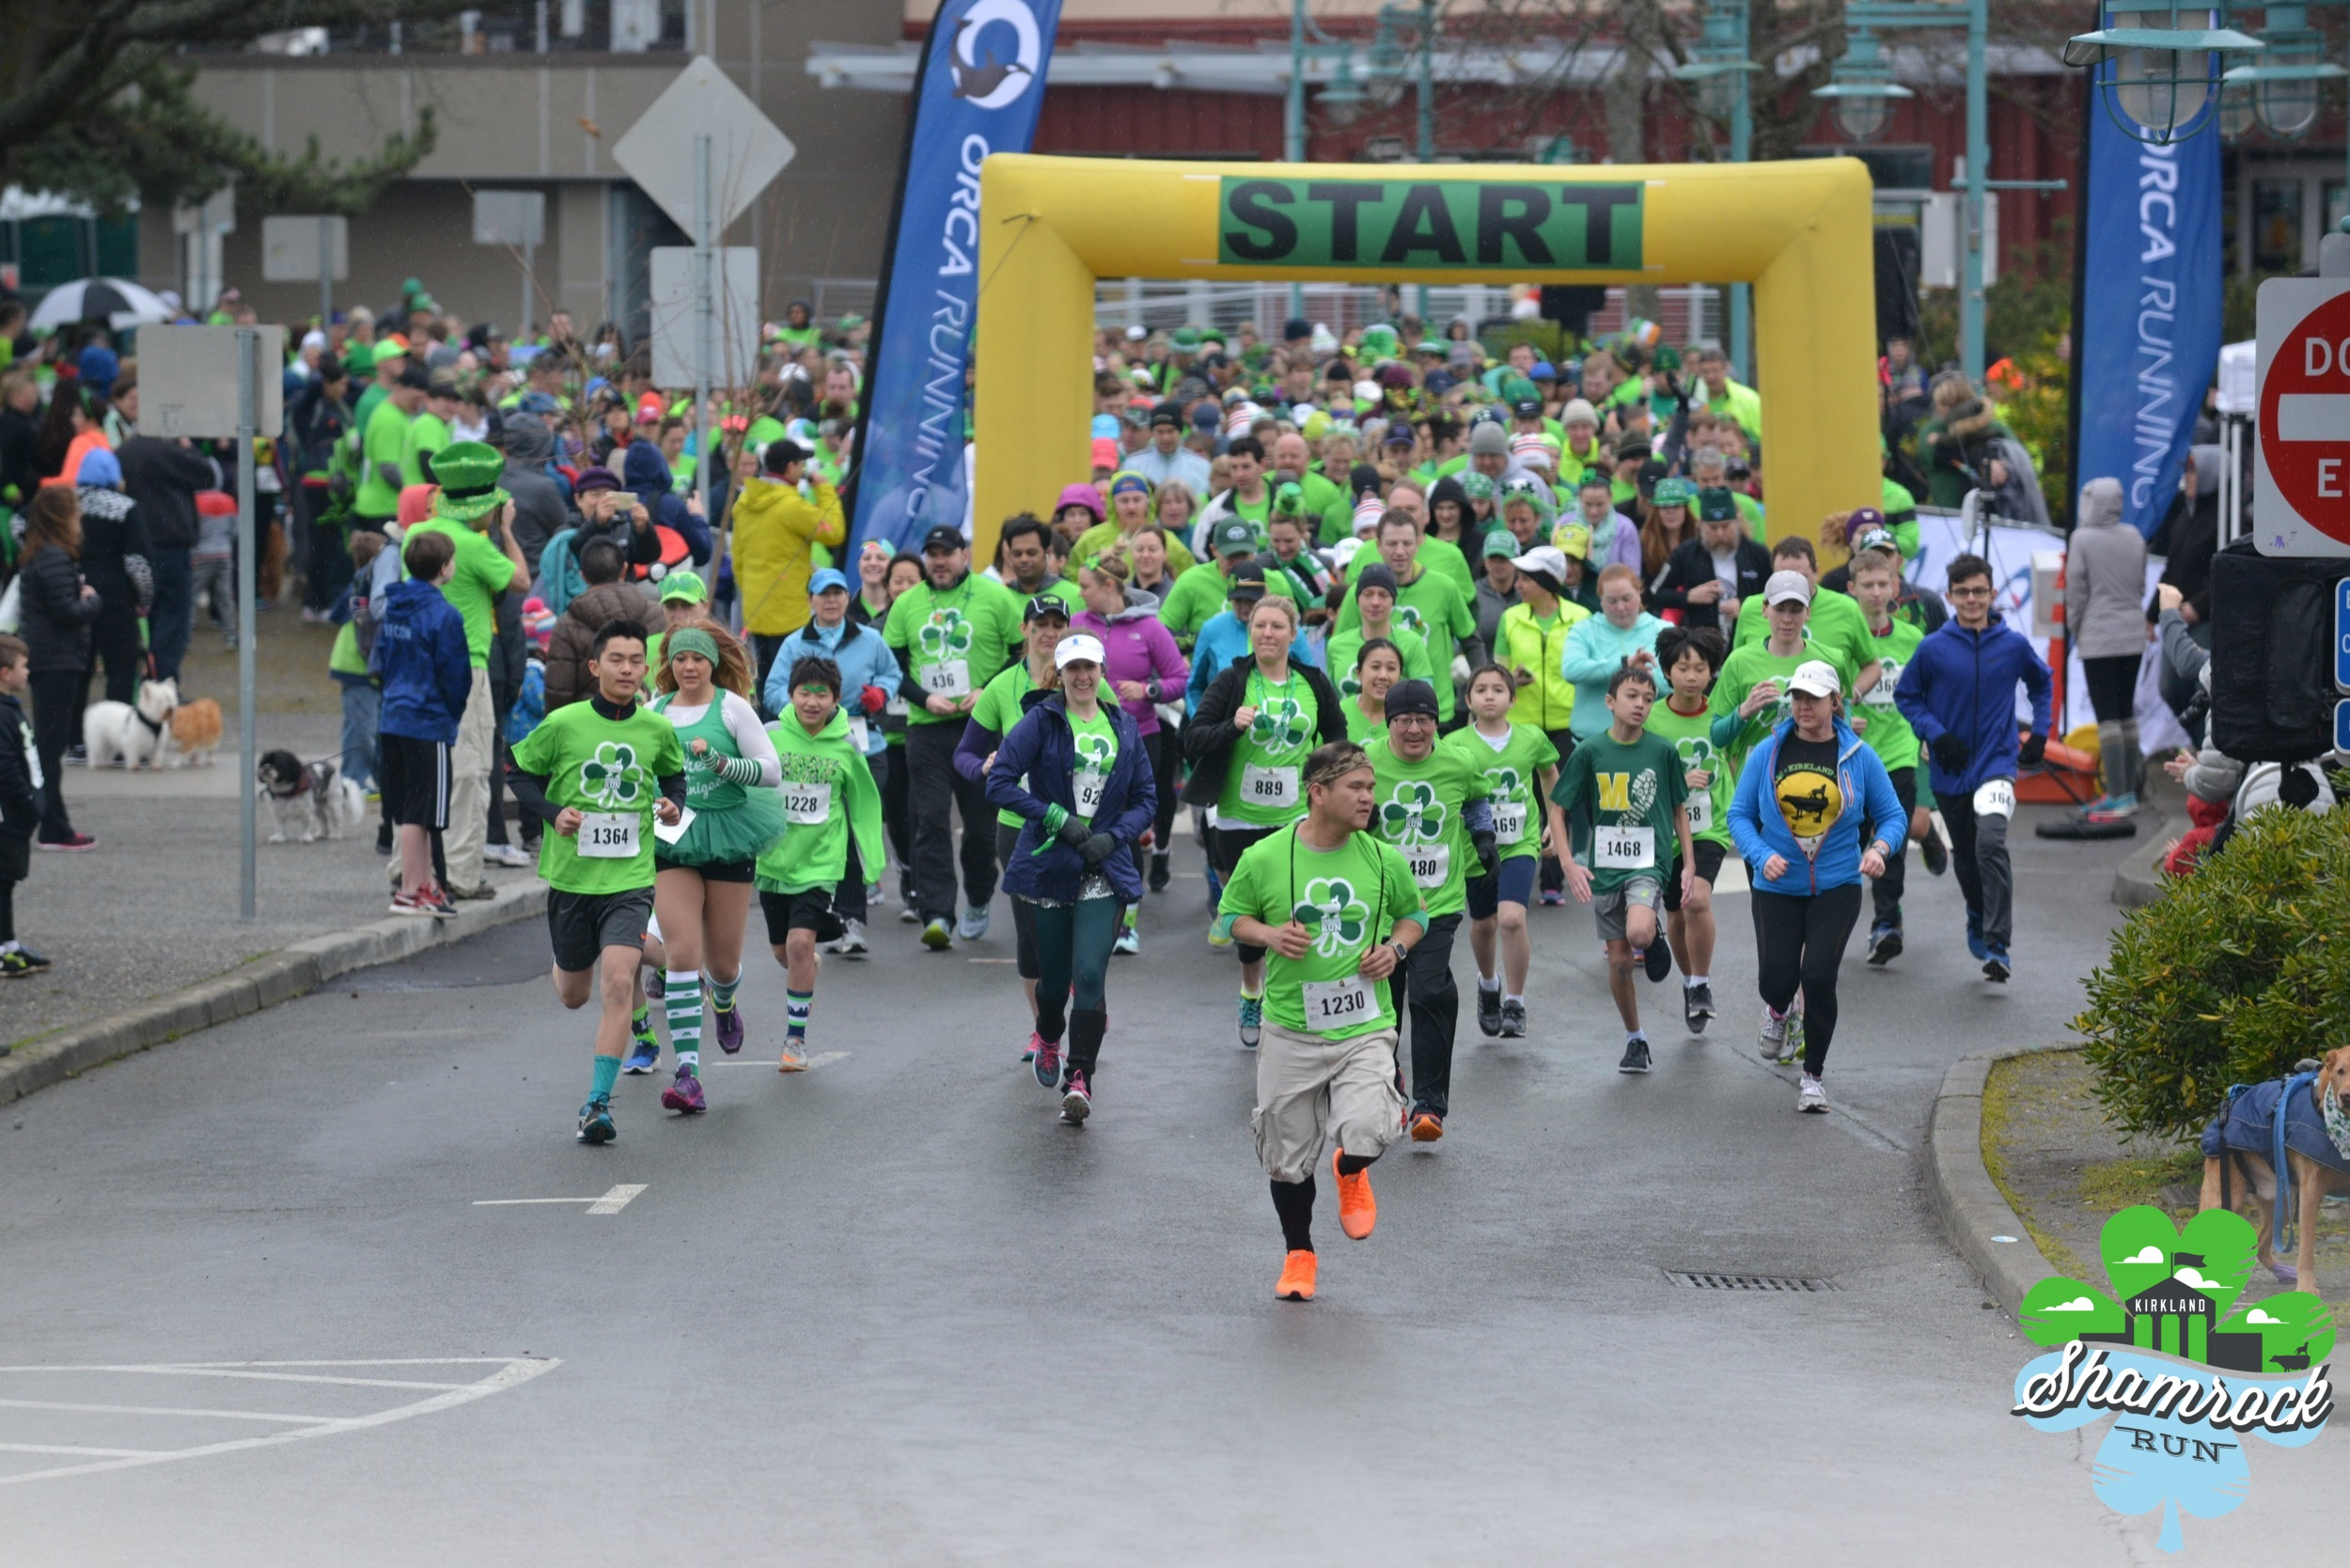 Kirkland Shamrock Run 2018 - We were excited to again be the title sponsor of the 7th Kirkland Shamrock Run which we founded in 2011. Along with runners we helped to donate over $5,000 to local charities.March 2017